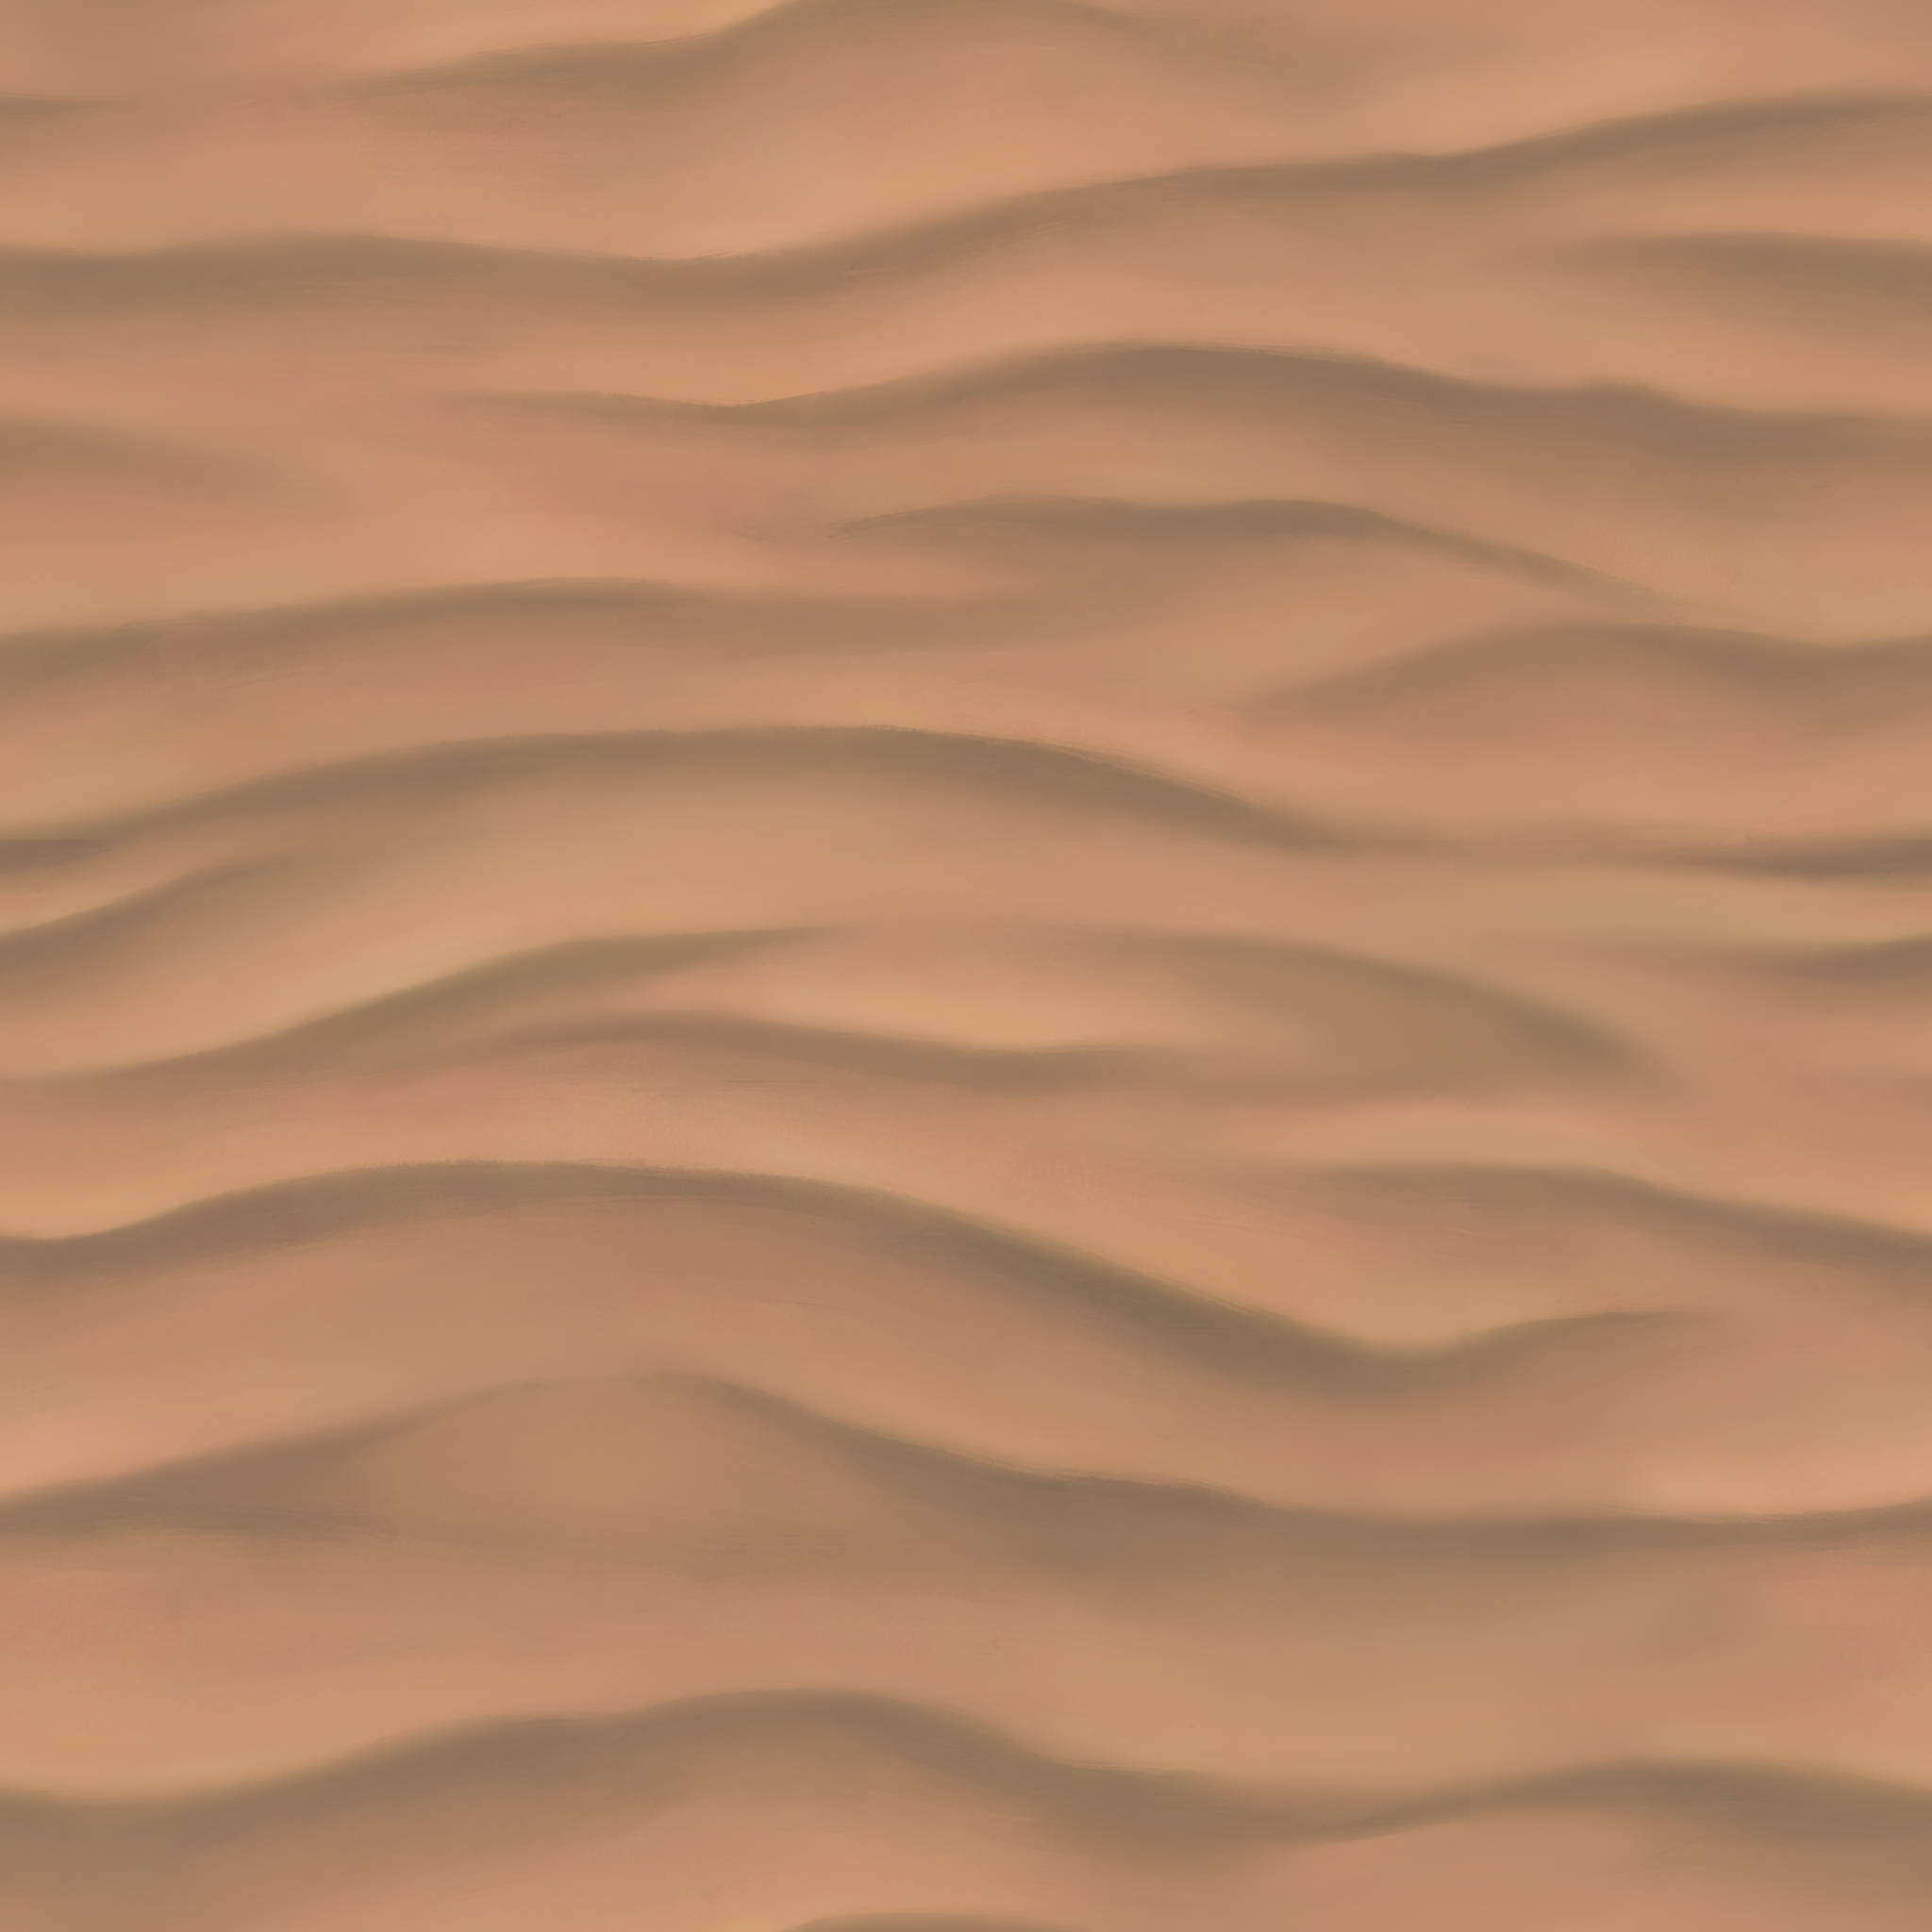 2048 Digitally Painted Tileable Desert Sand Texture | OpenGameArt.org